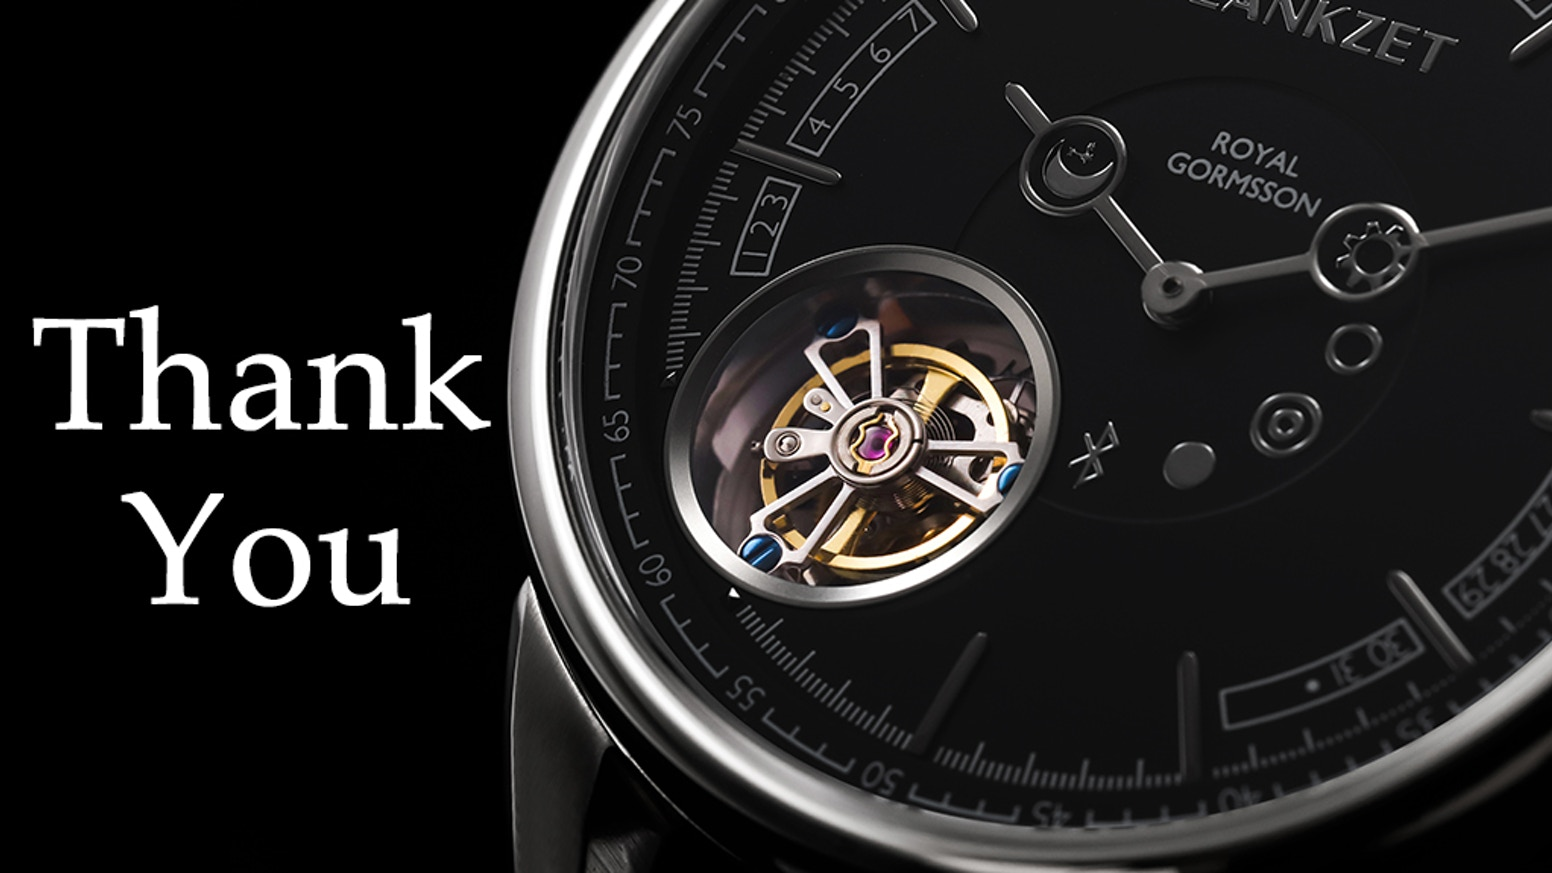 Combining the tourbillon mechanical watch design with smartwatch features, we made exquisite luxury watches at an irresistible price.